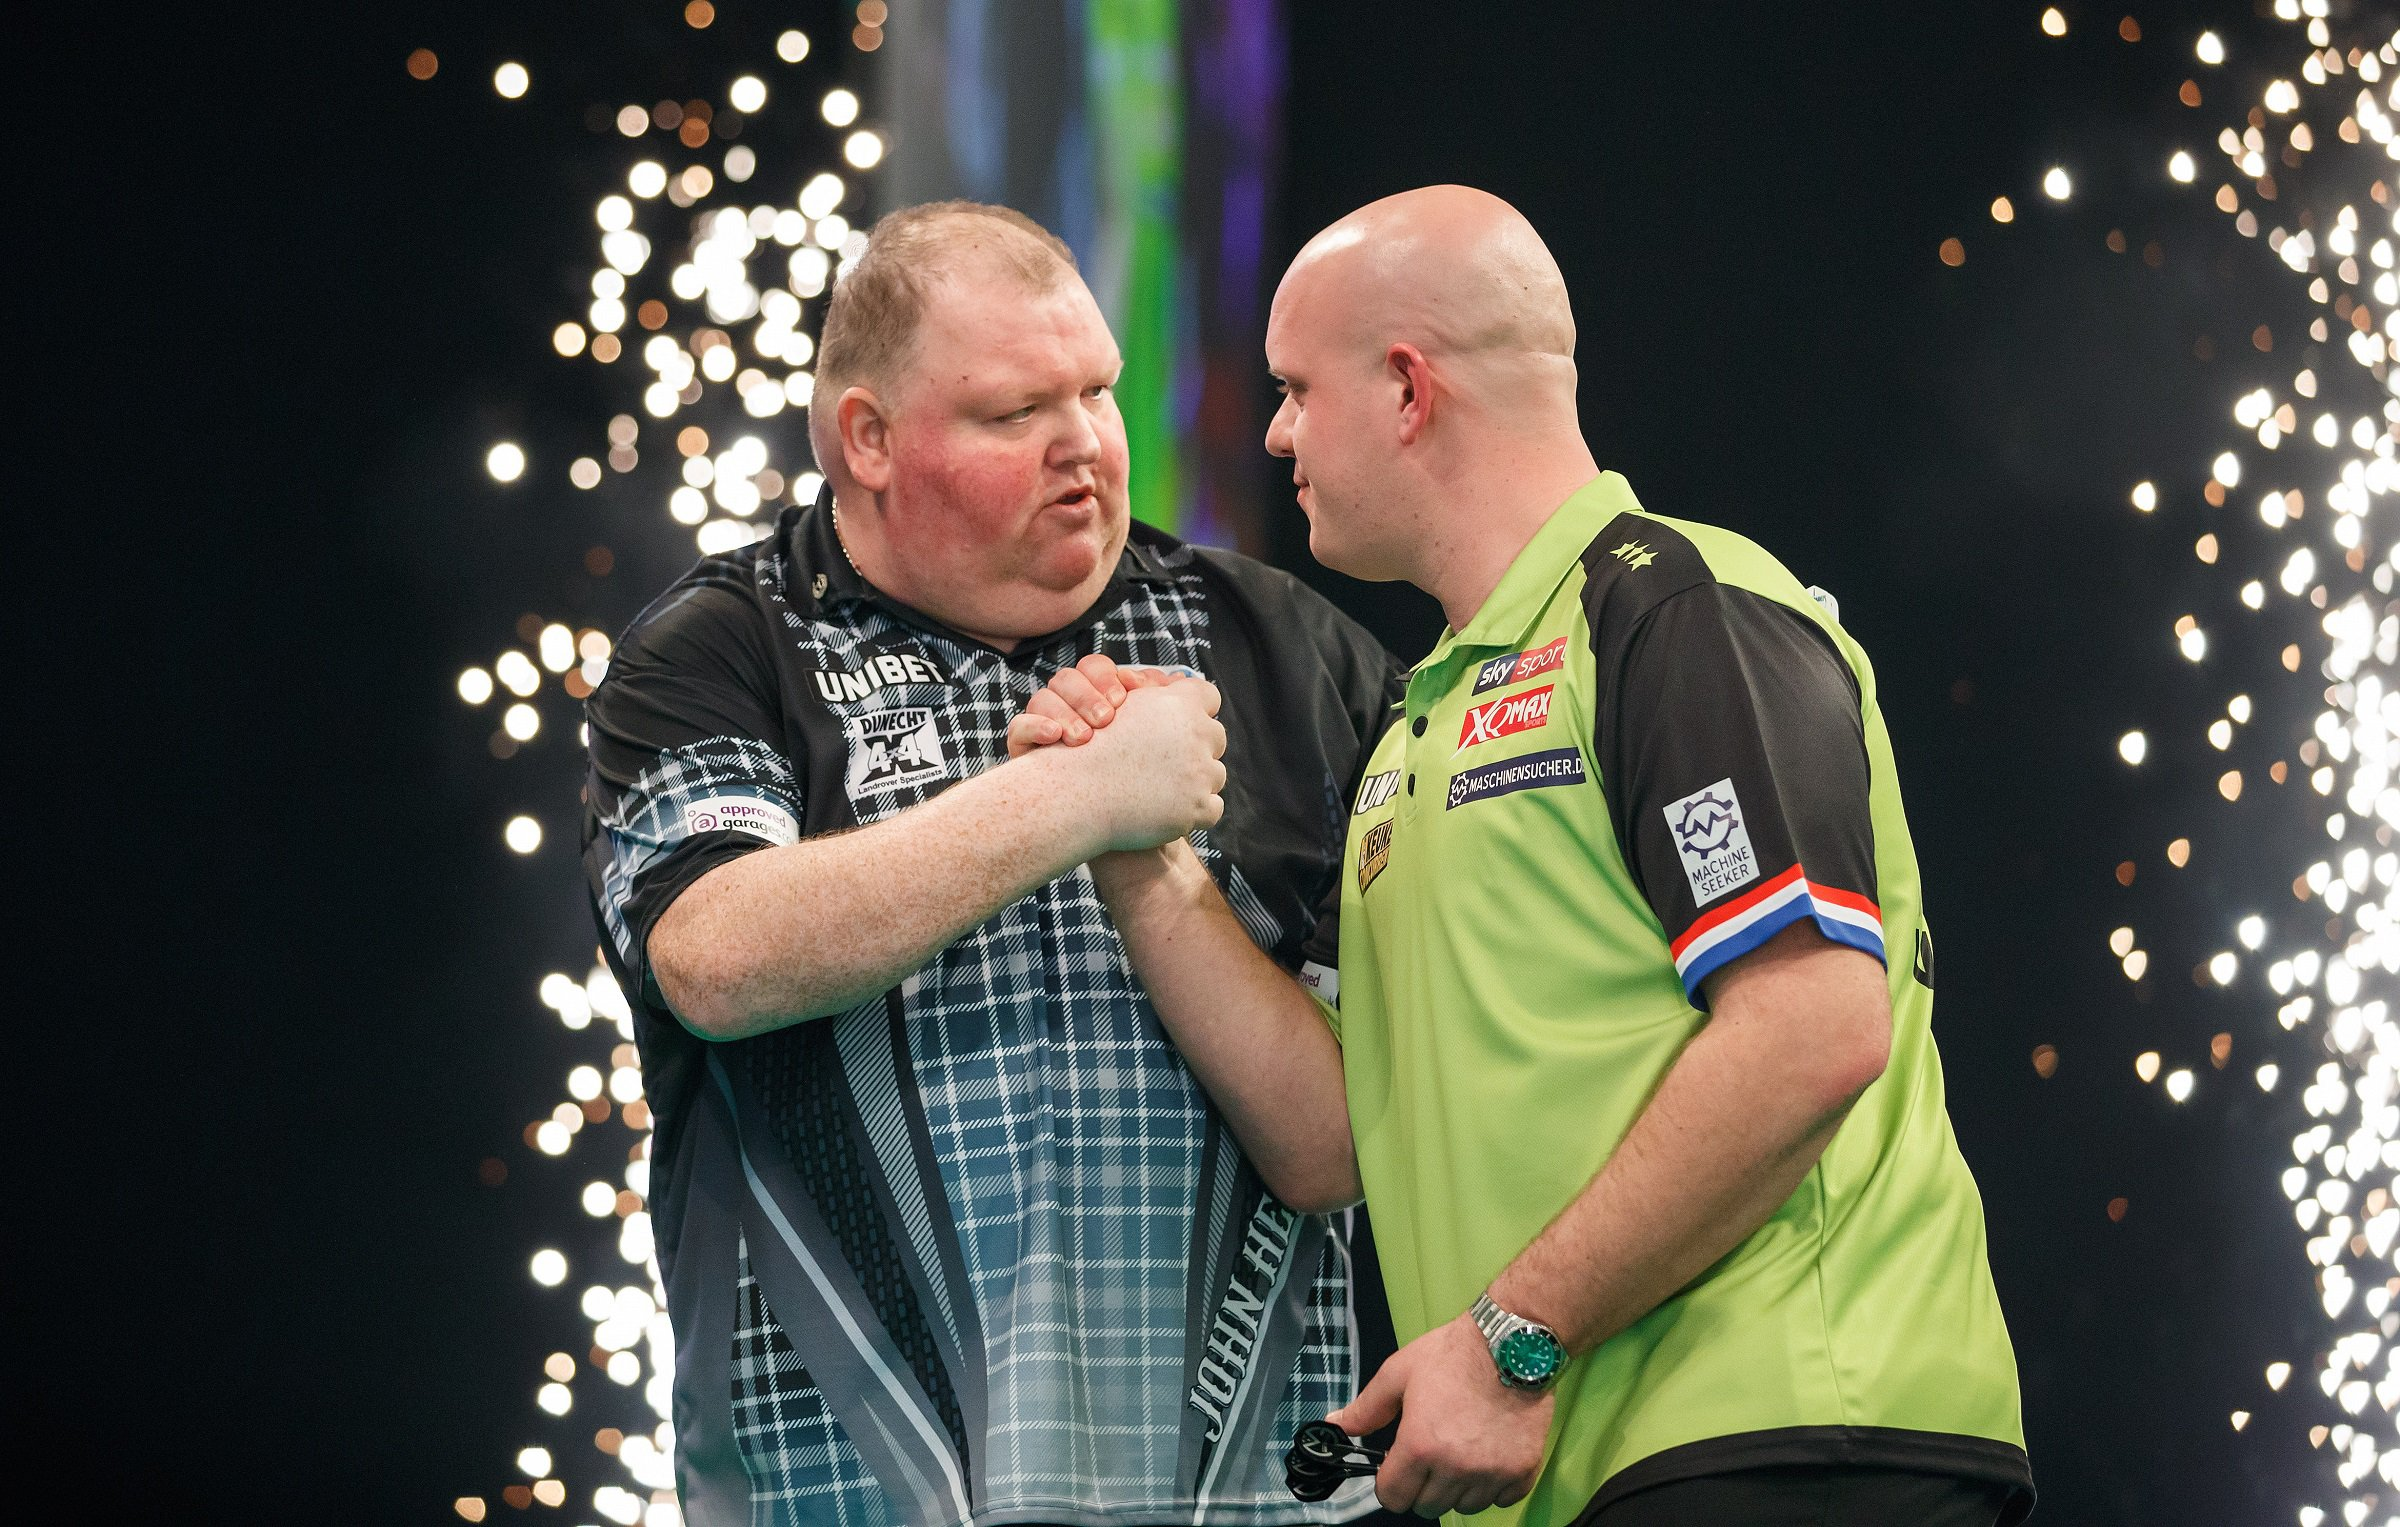 Premier League Darts: Michael van Gerwen held to a draw by John Henderson as winless run continues